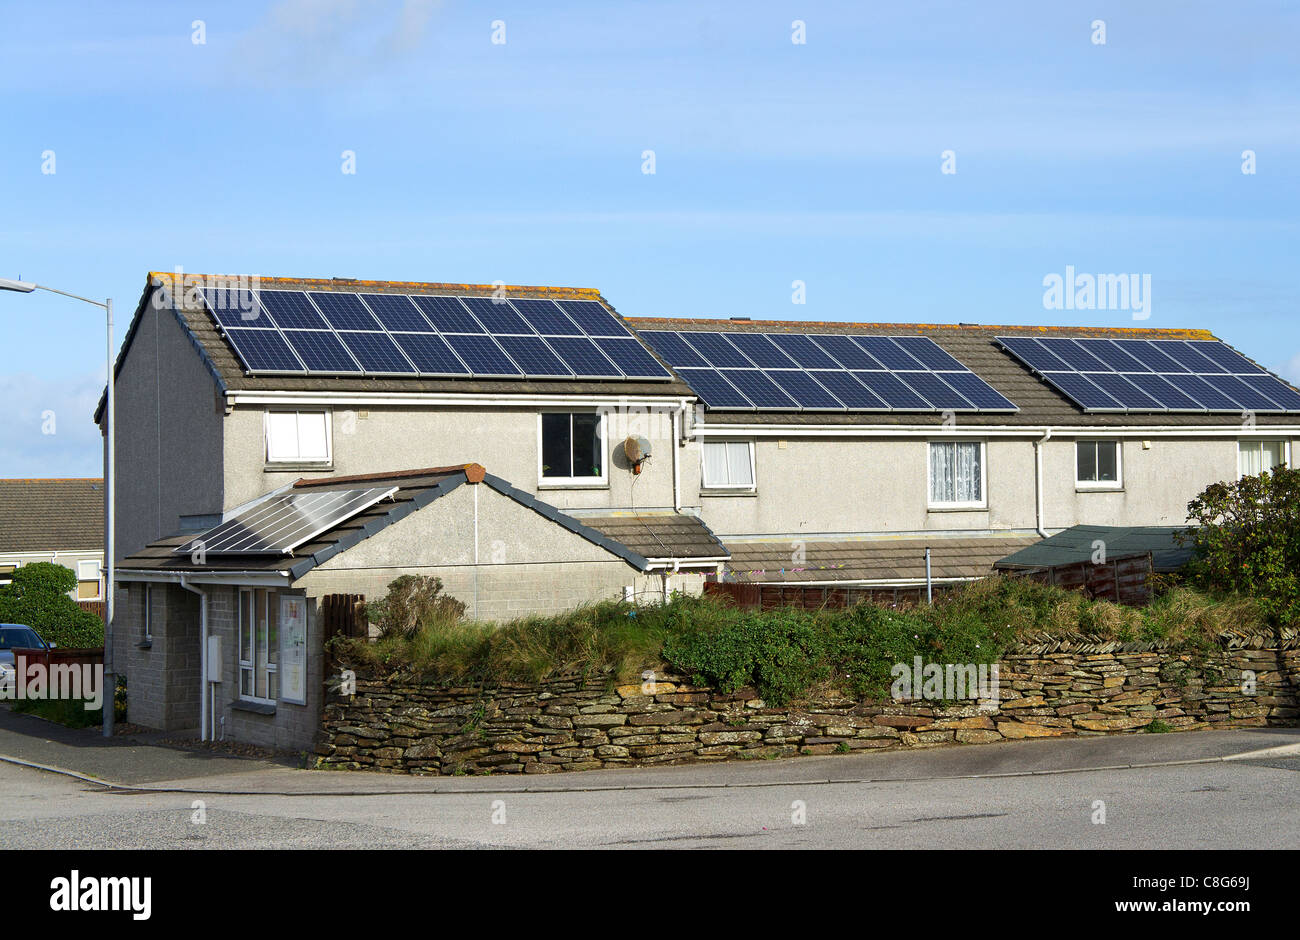 solar panels fitted on council houses in redruth, cornwall, uk - Stock Image